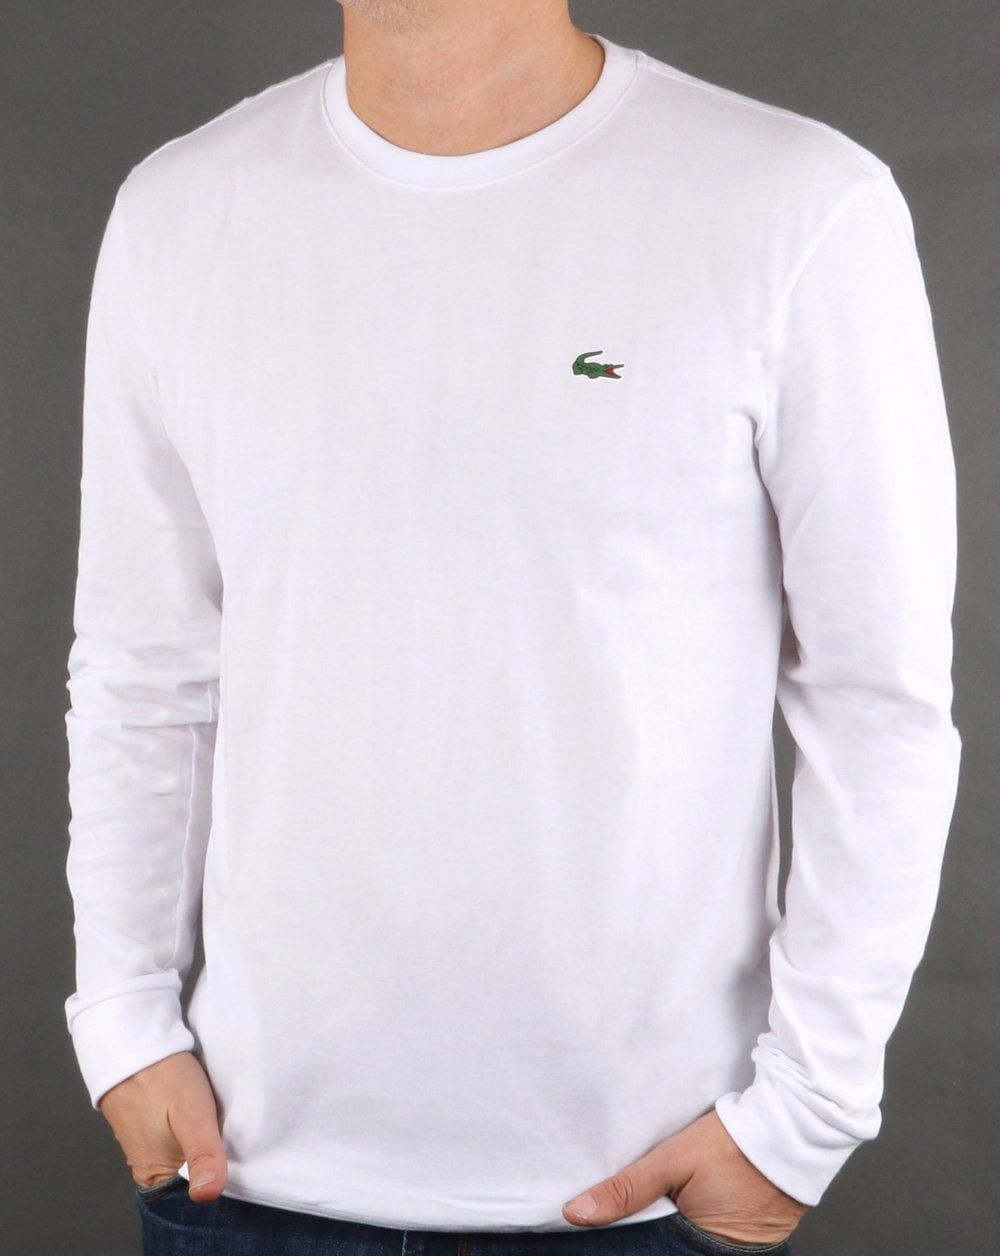 7ba704219284 Lacoste Long Sleeve T-shirt White, Mens, Tee, Smart, Cotton, Crew Neck